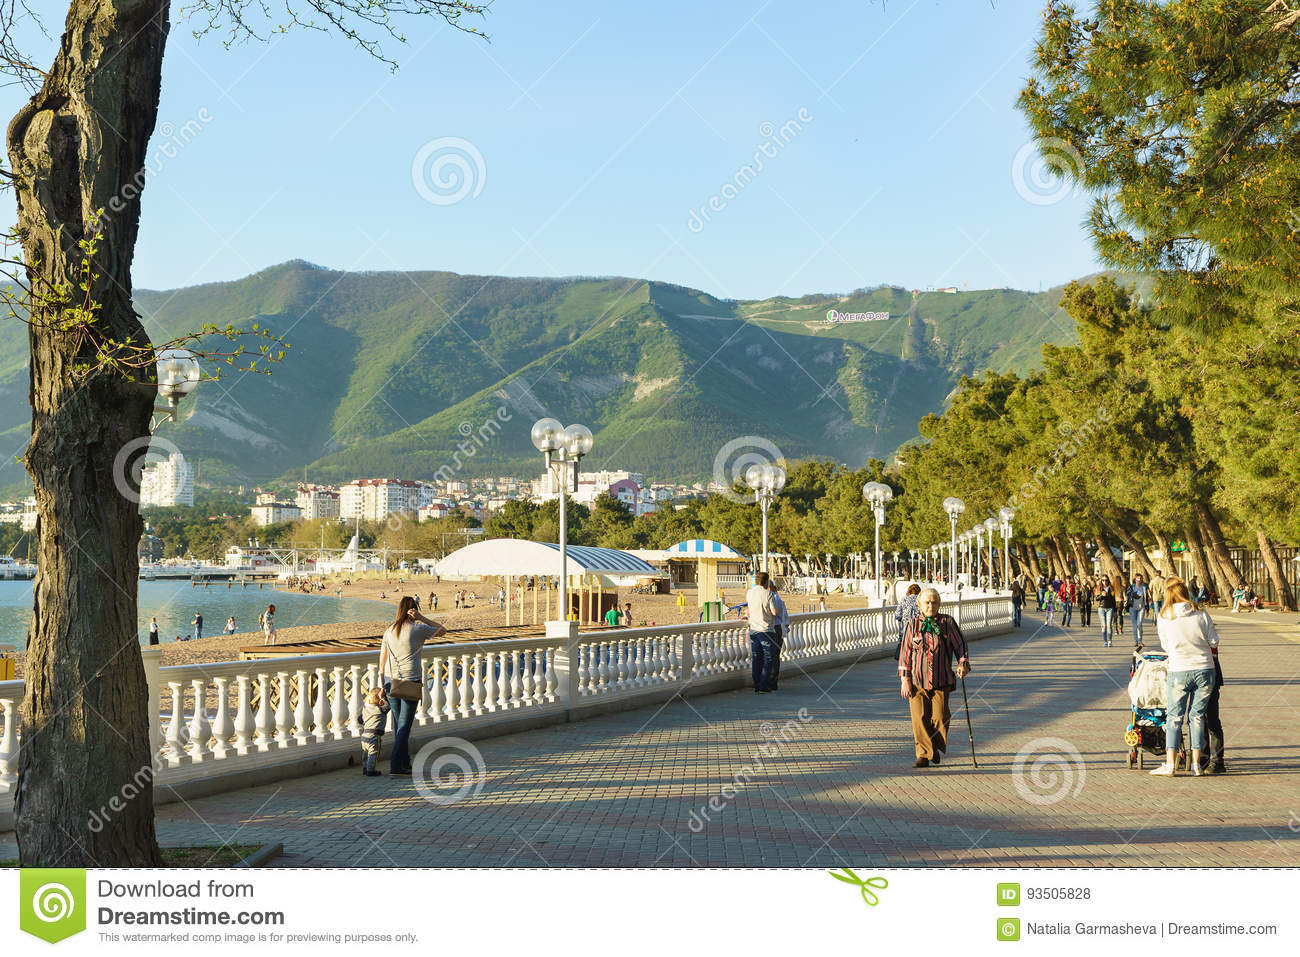 Gelendzhik Krasnodar Krai Russia April 29 2017 People Walk On The Evening Promenade Of Gelendzhik On The Background Of Mounta Editorial Stock Photo Image Of Paint Resort 93505828